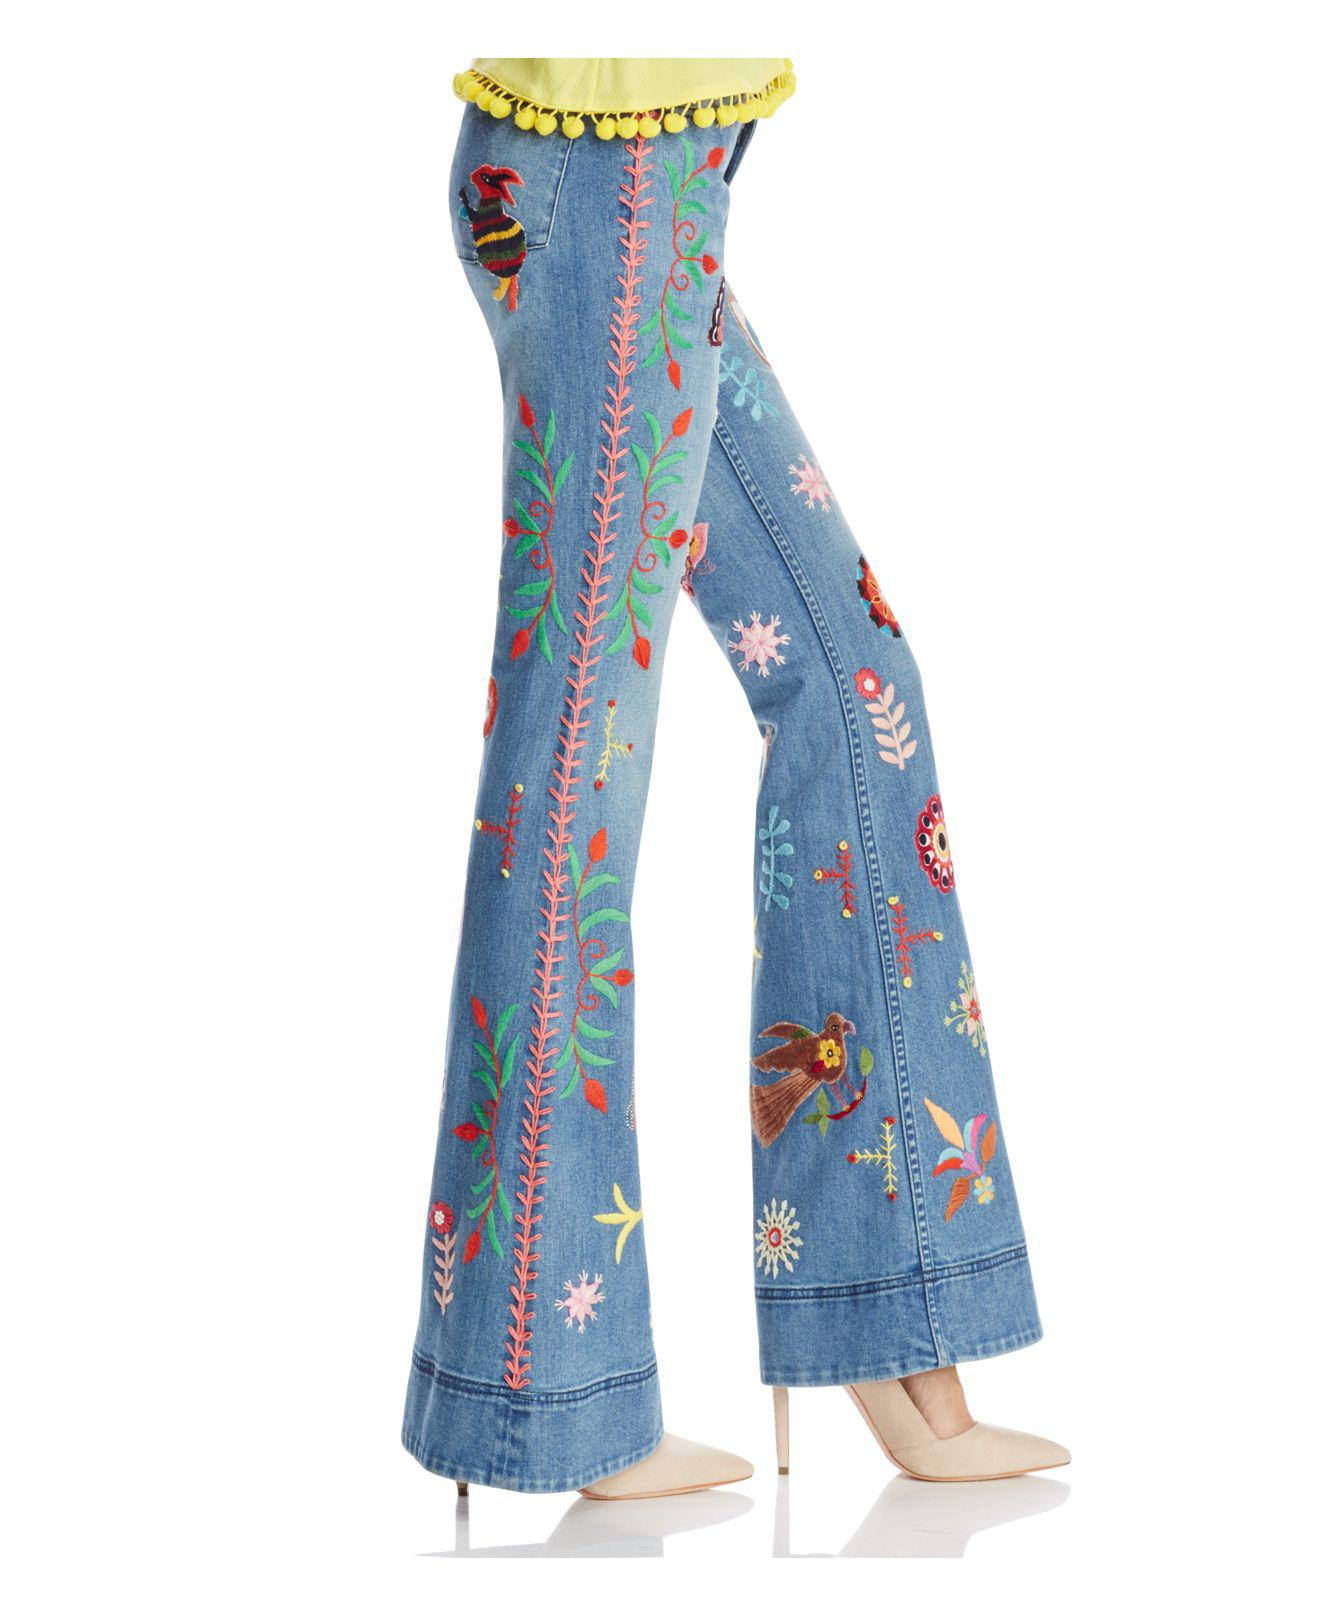 Alice + Olivia Denim Alice + Olivia Rylie Embroidered Low-rise Bell Bottom Jeans In Faded Indigo in Blue